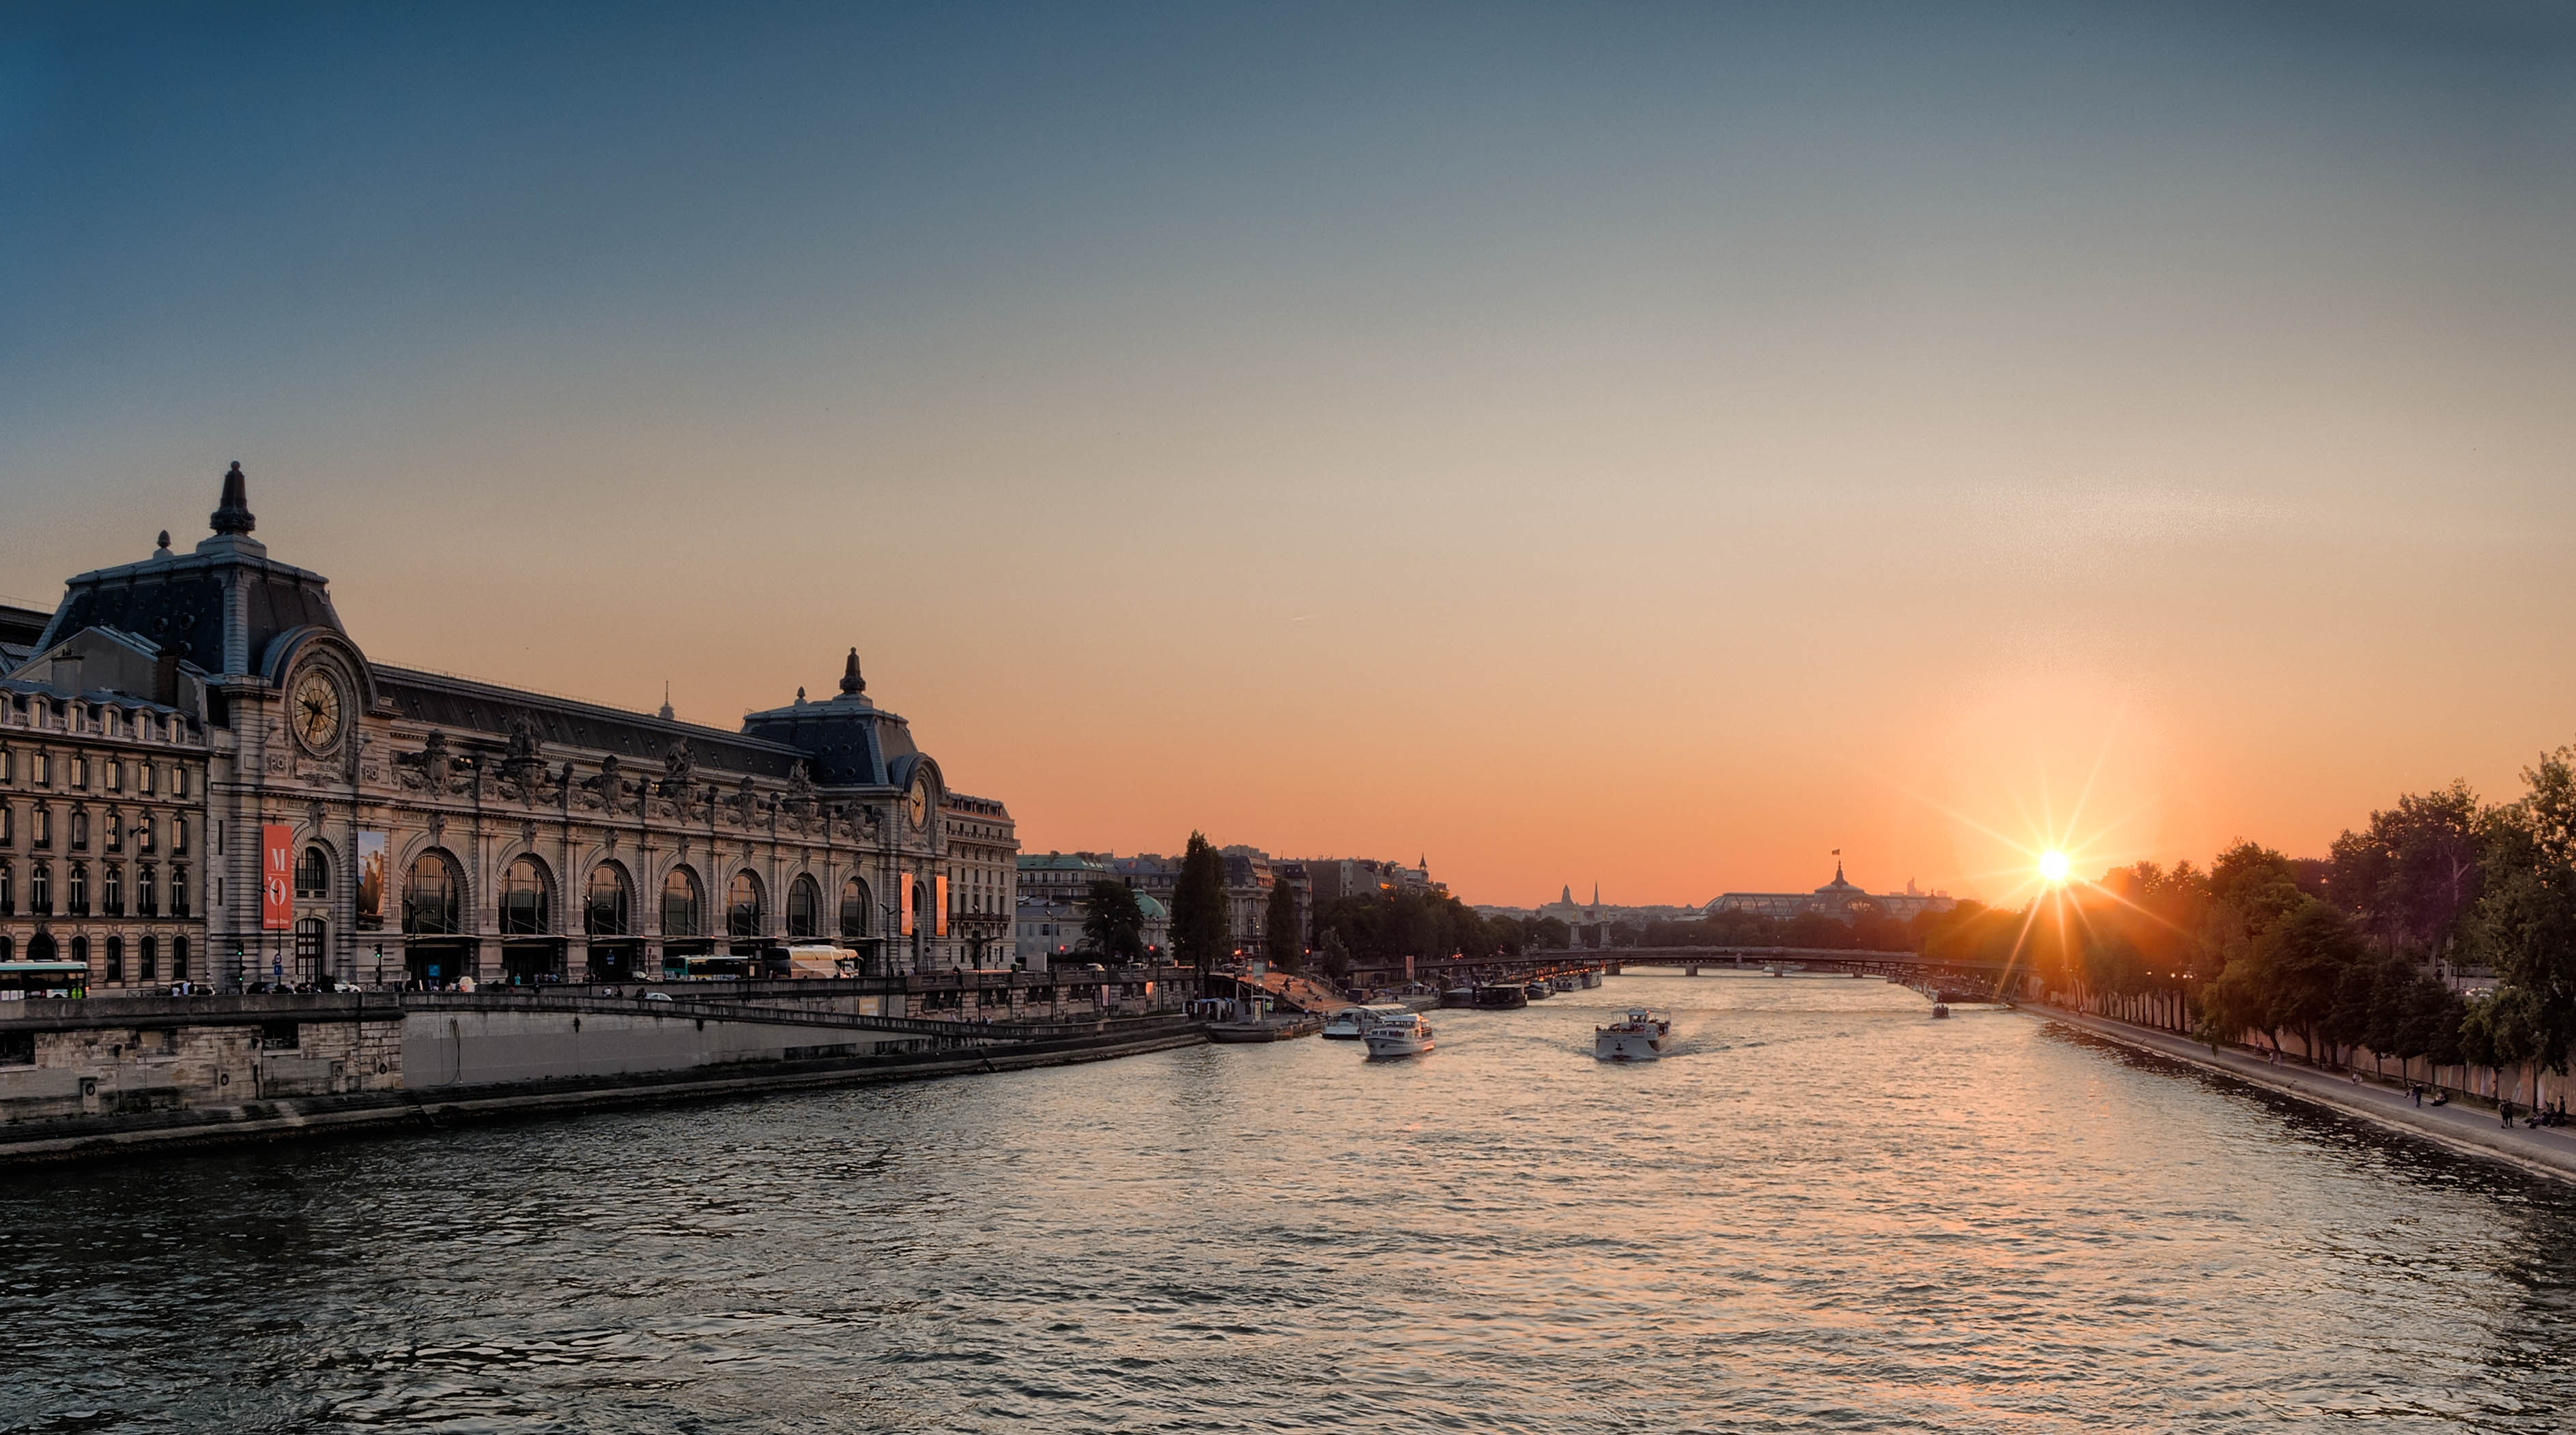 White Speed Boat on River during Sunset, Architecture, Building, City, Dawn, HQ Photo